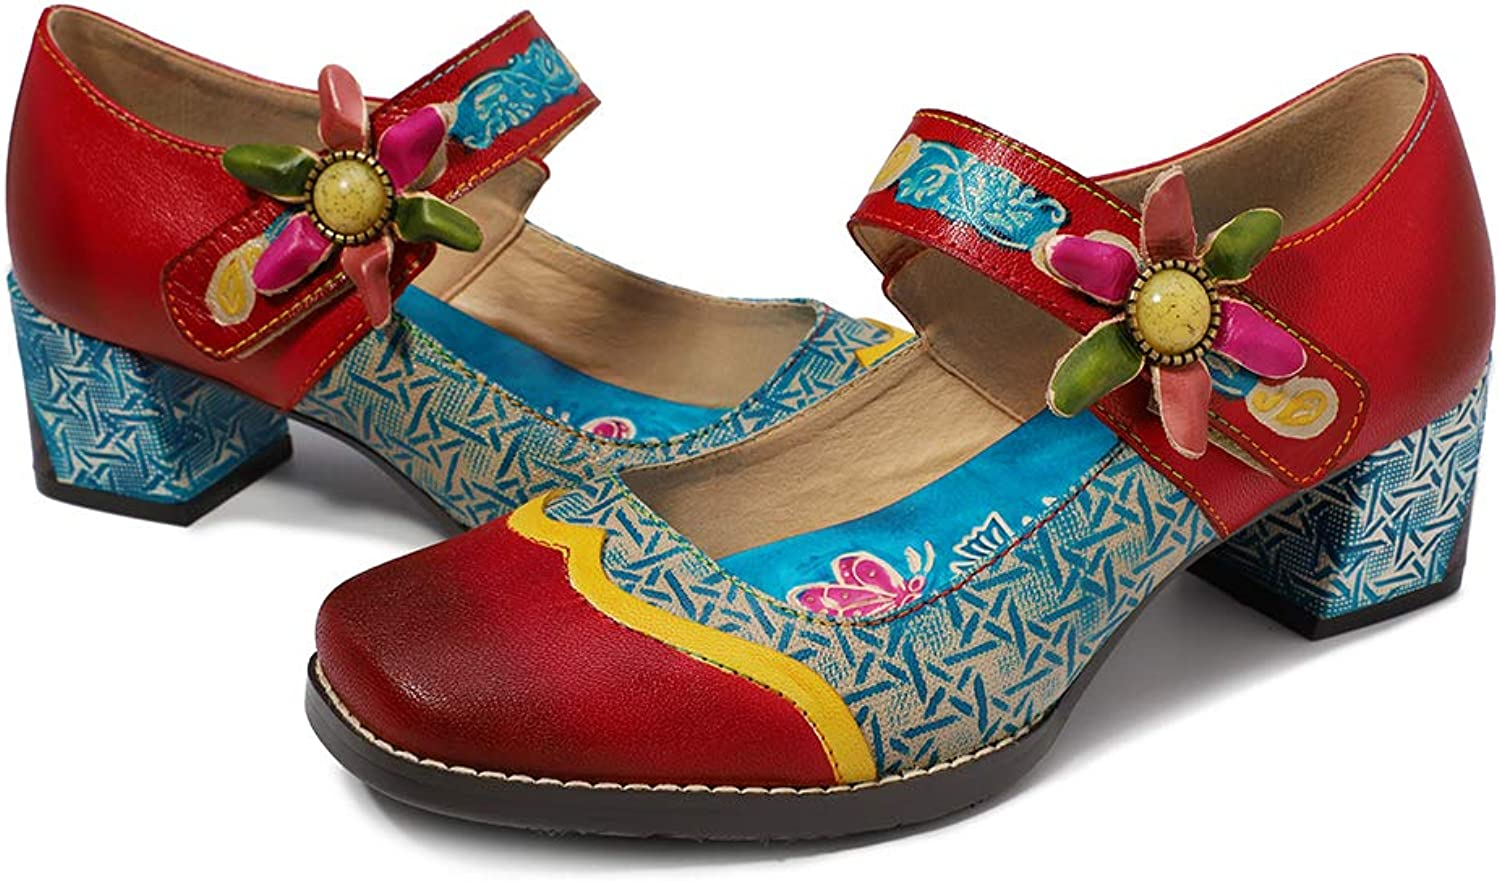 CrazycatZ Womens Leather Mary Jane shoes colorful Patchword Block Heel Pumps Vintage Mary Jane shoes